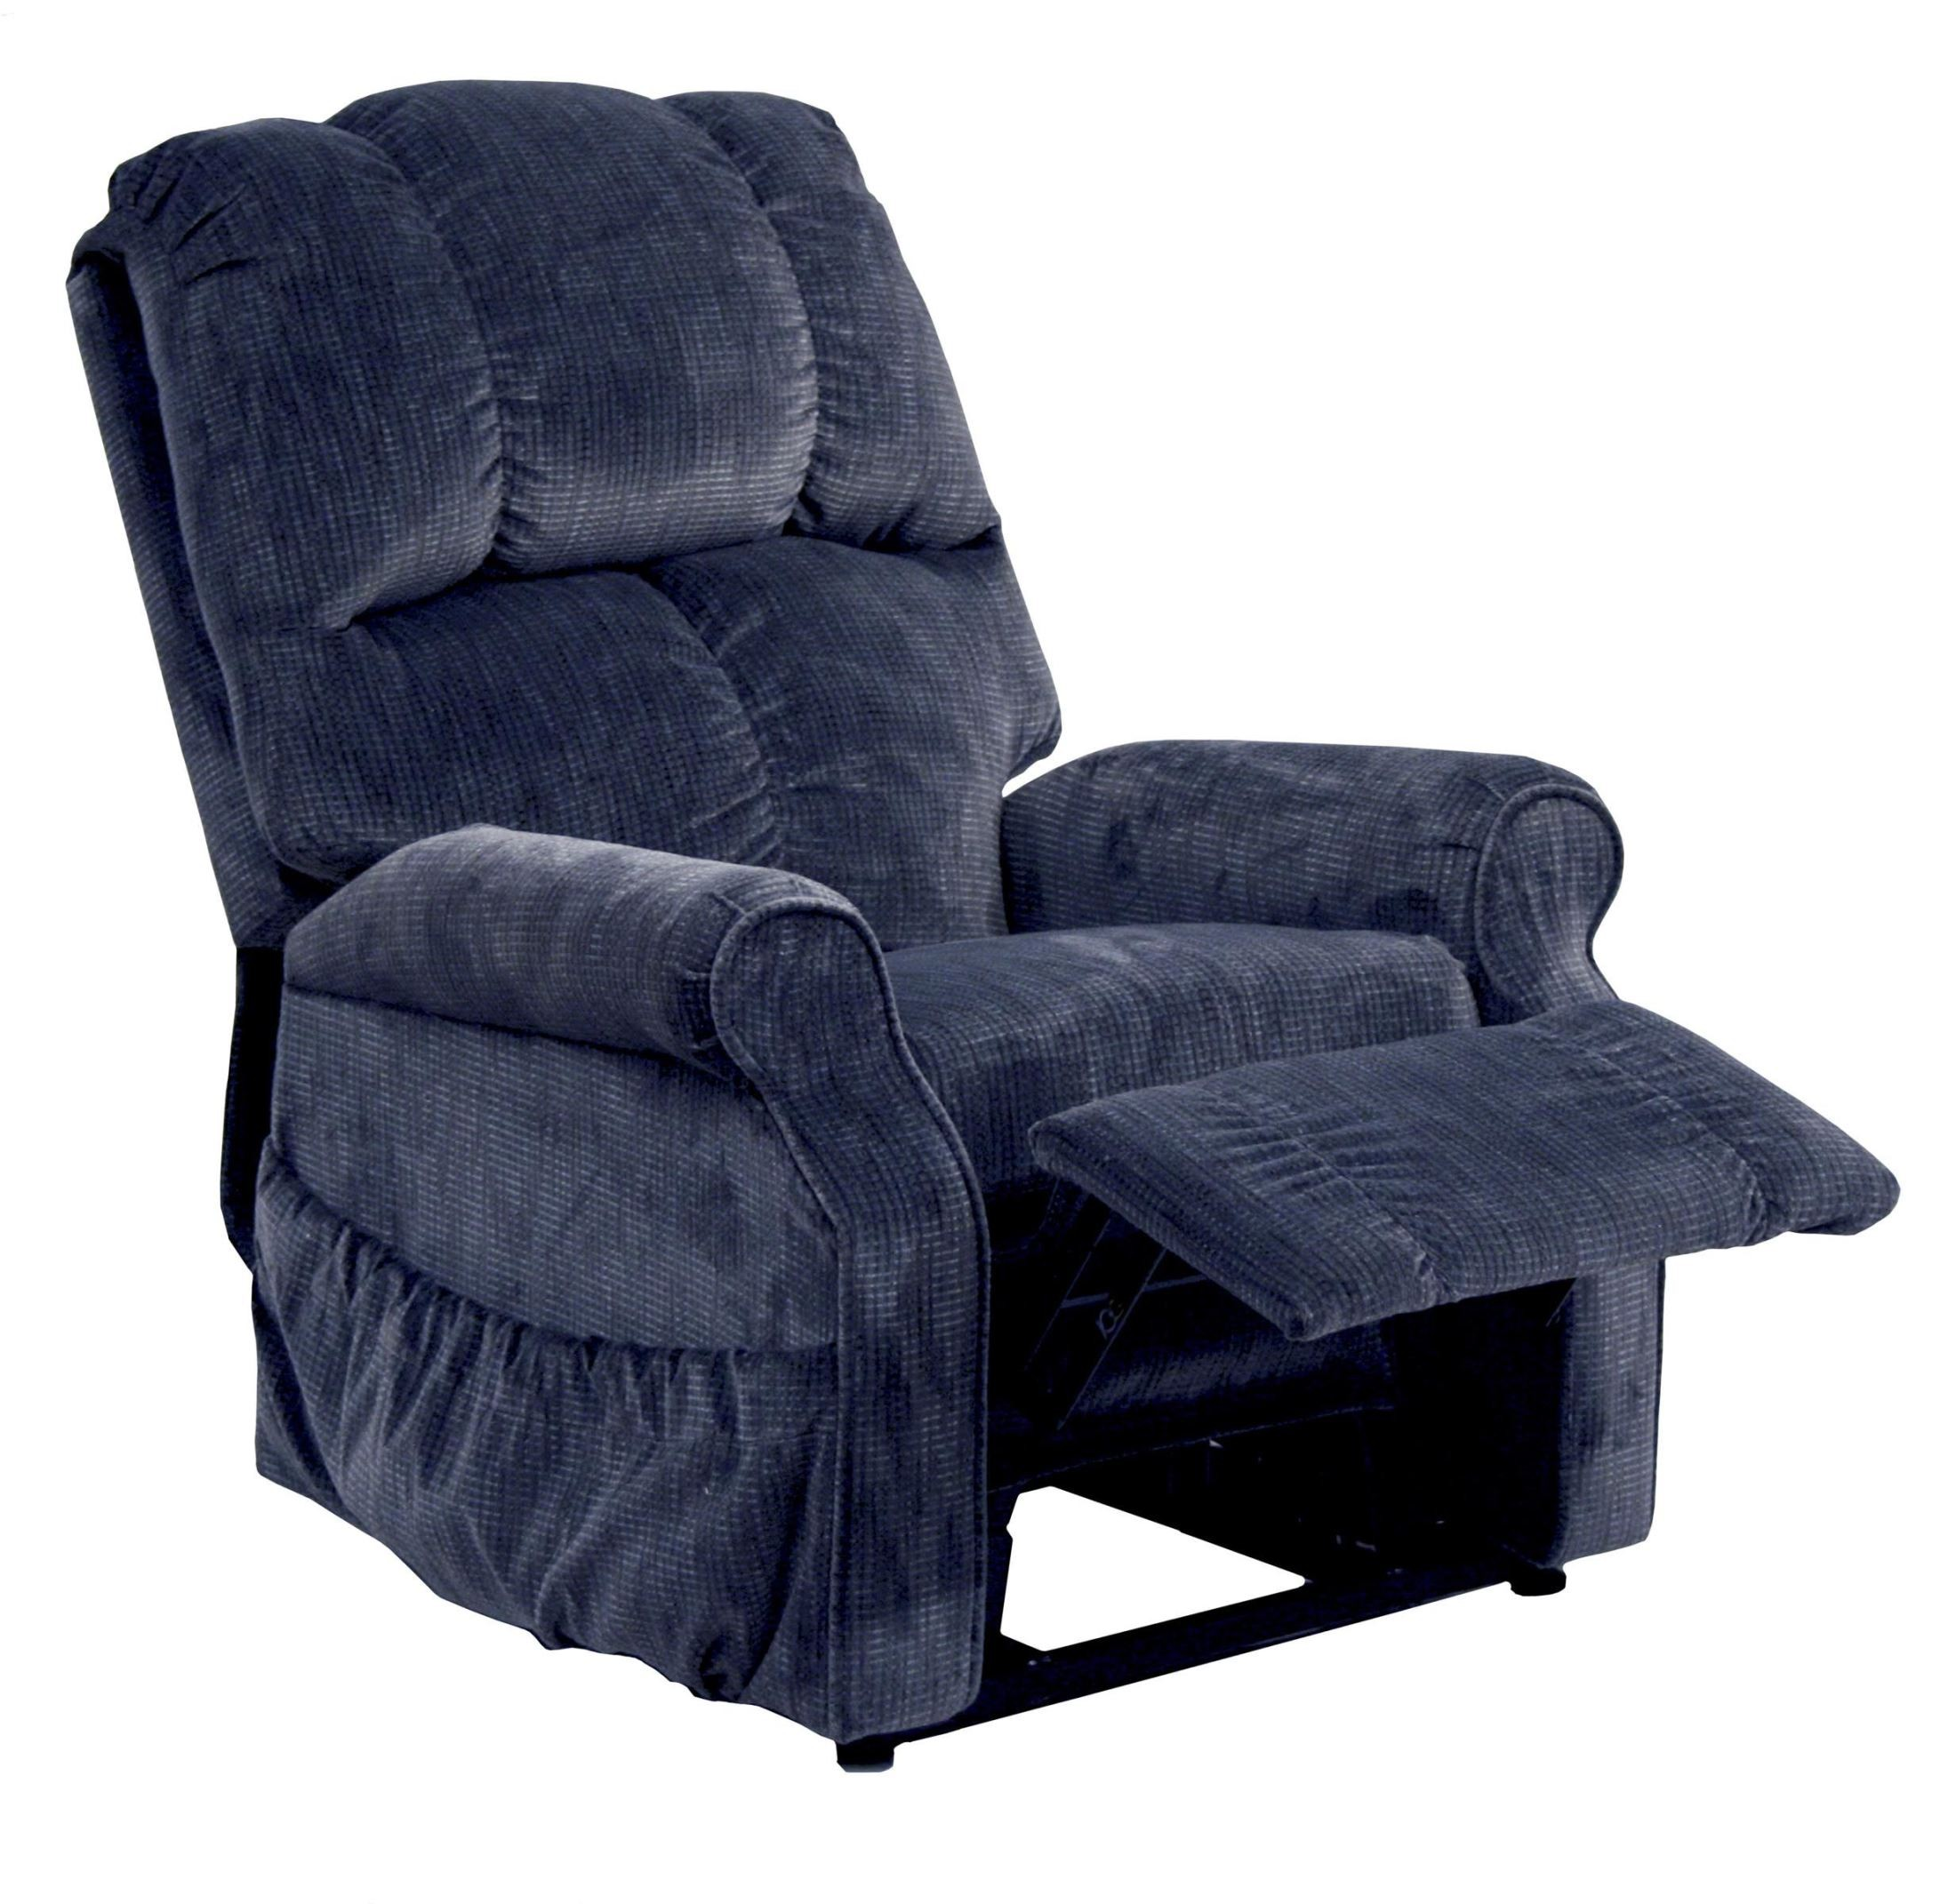 chair lifts medicare transport walmart somerset black pearl power lift recliner from catnapper